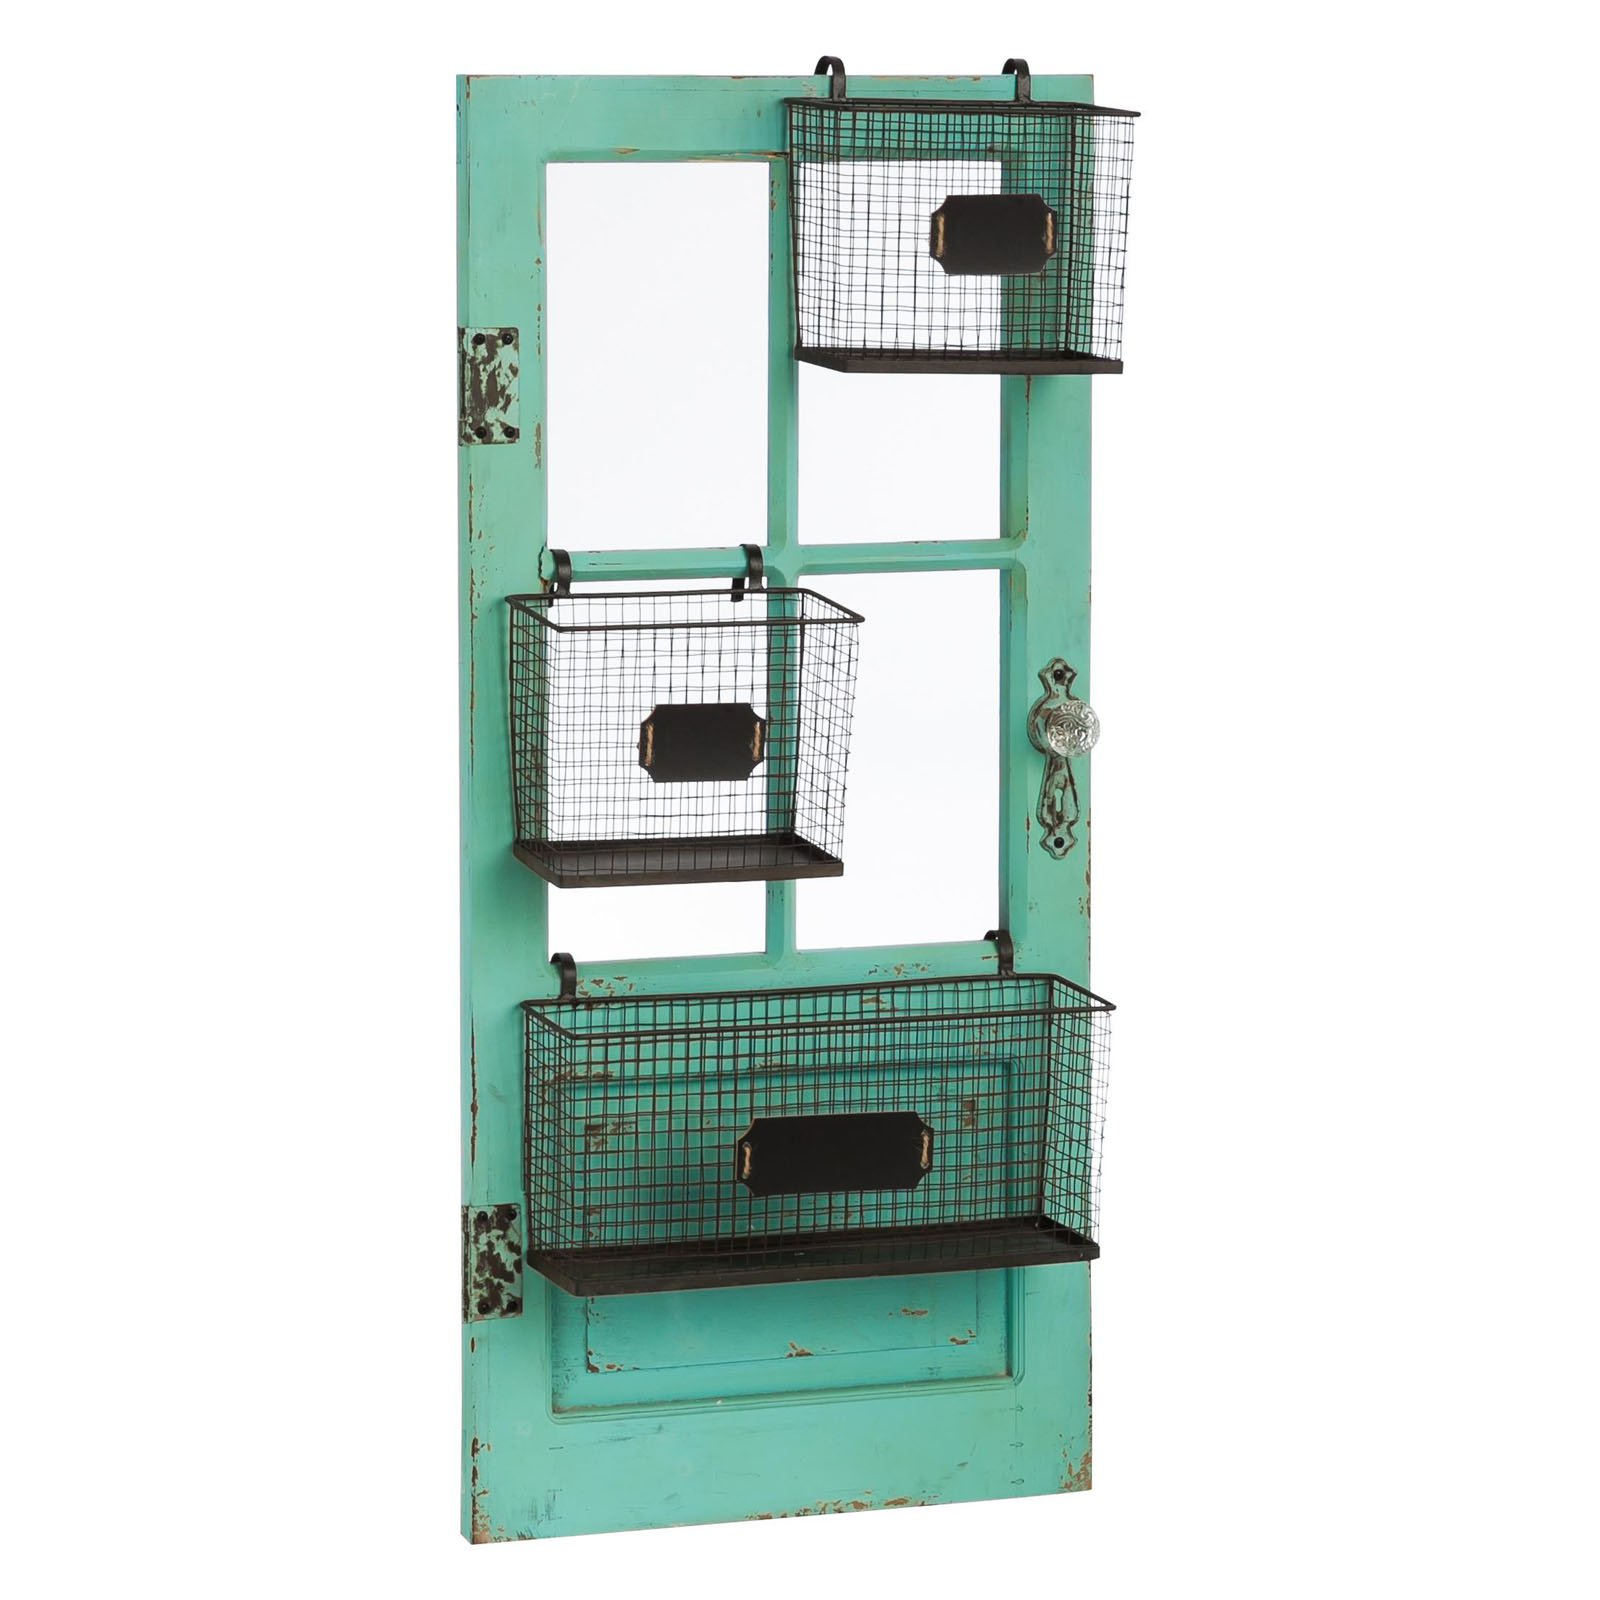 Evergreen Enterprises Distressed Vertical Door Frame with Metal Storage Baskets